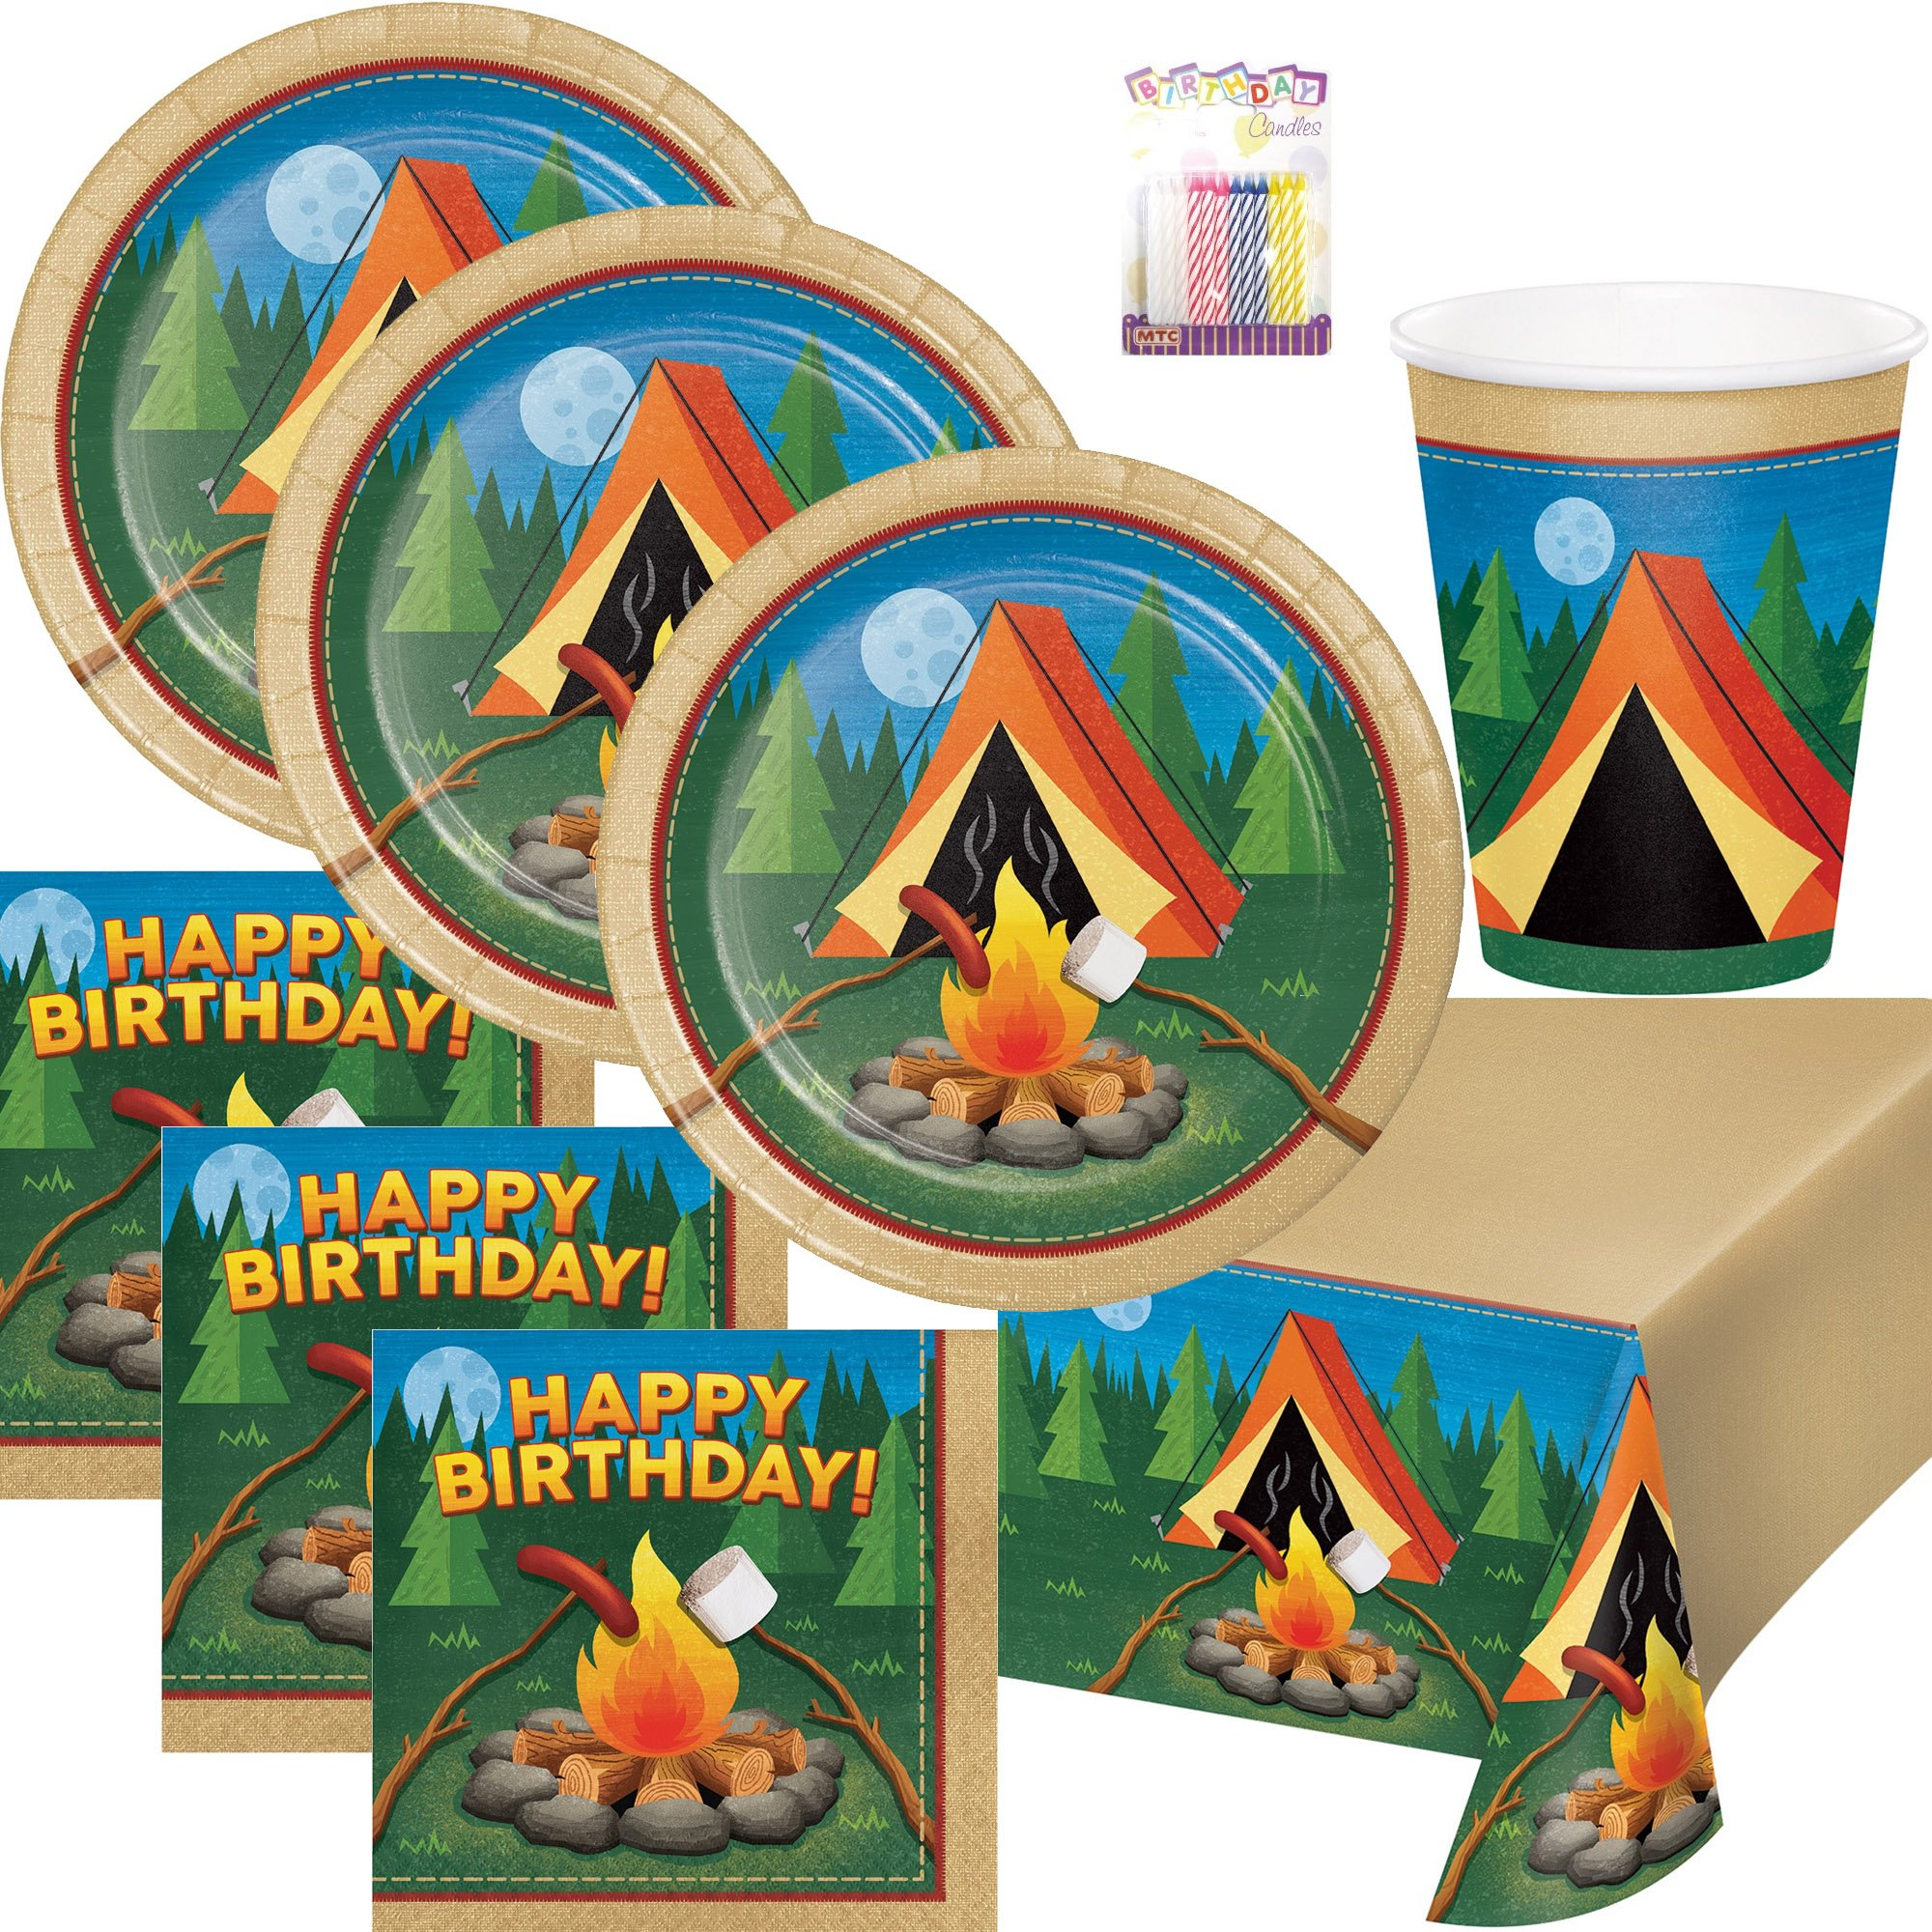 Camp Out Camping Theme Birthday Party Supplies Pack Serves 16: Dinner Plates, Luncheon Napkins, Cups, Table Cover and Birthday Candles by Lobyn Value Packs